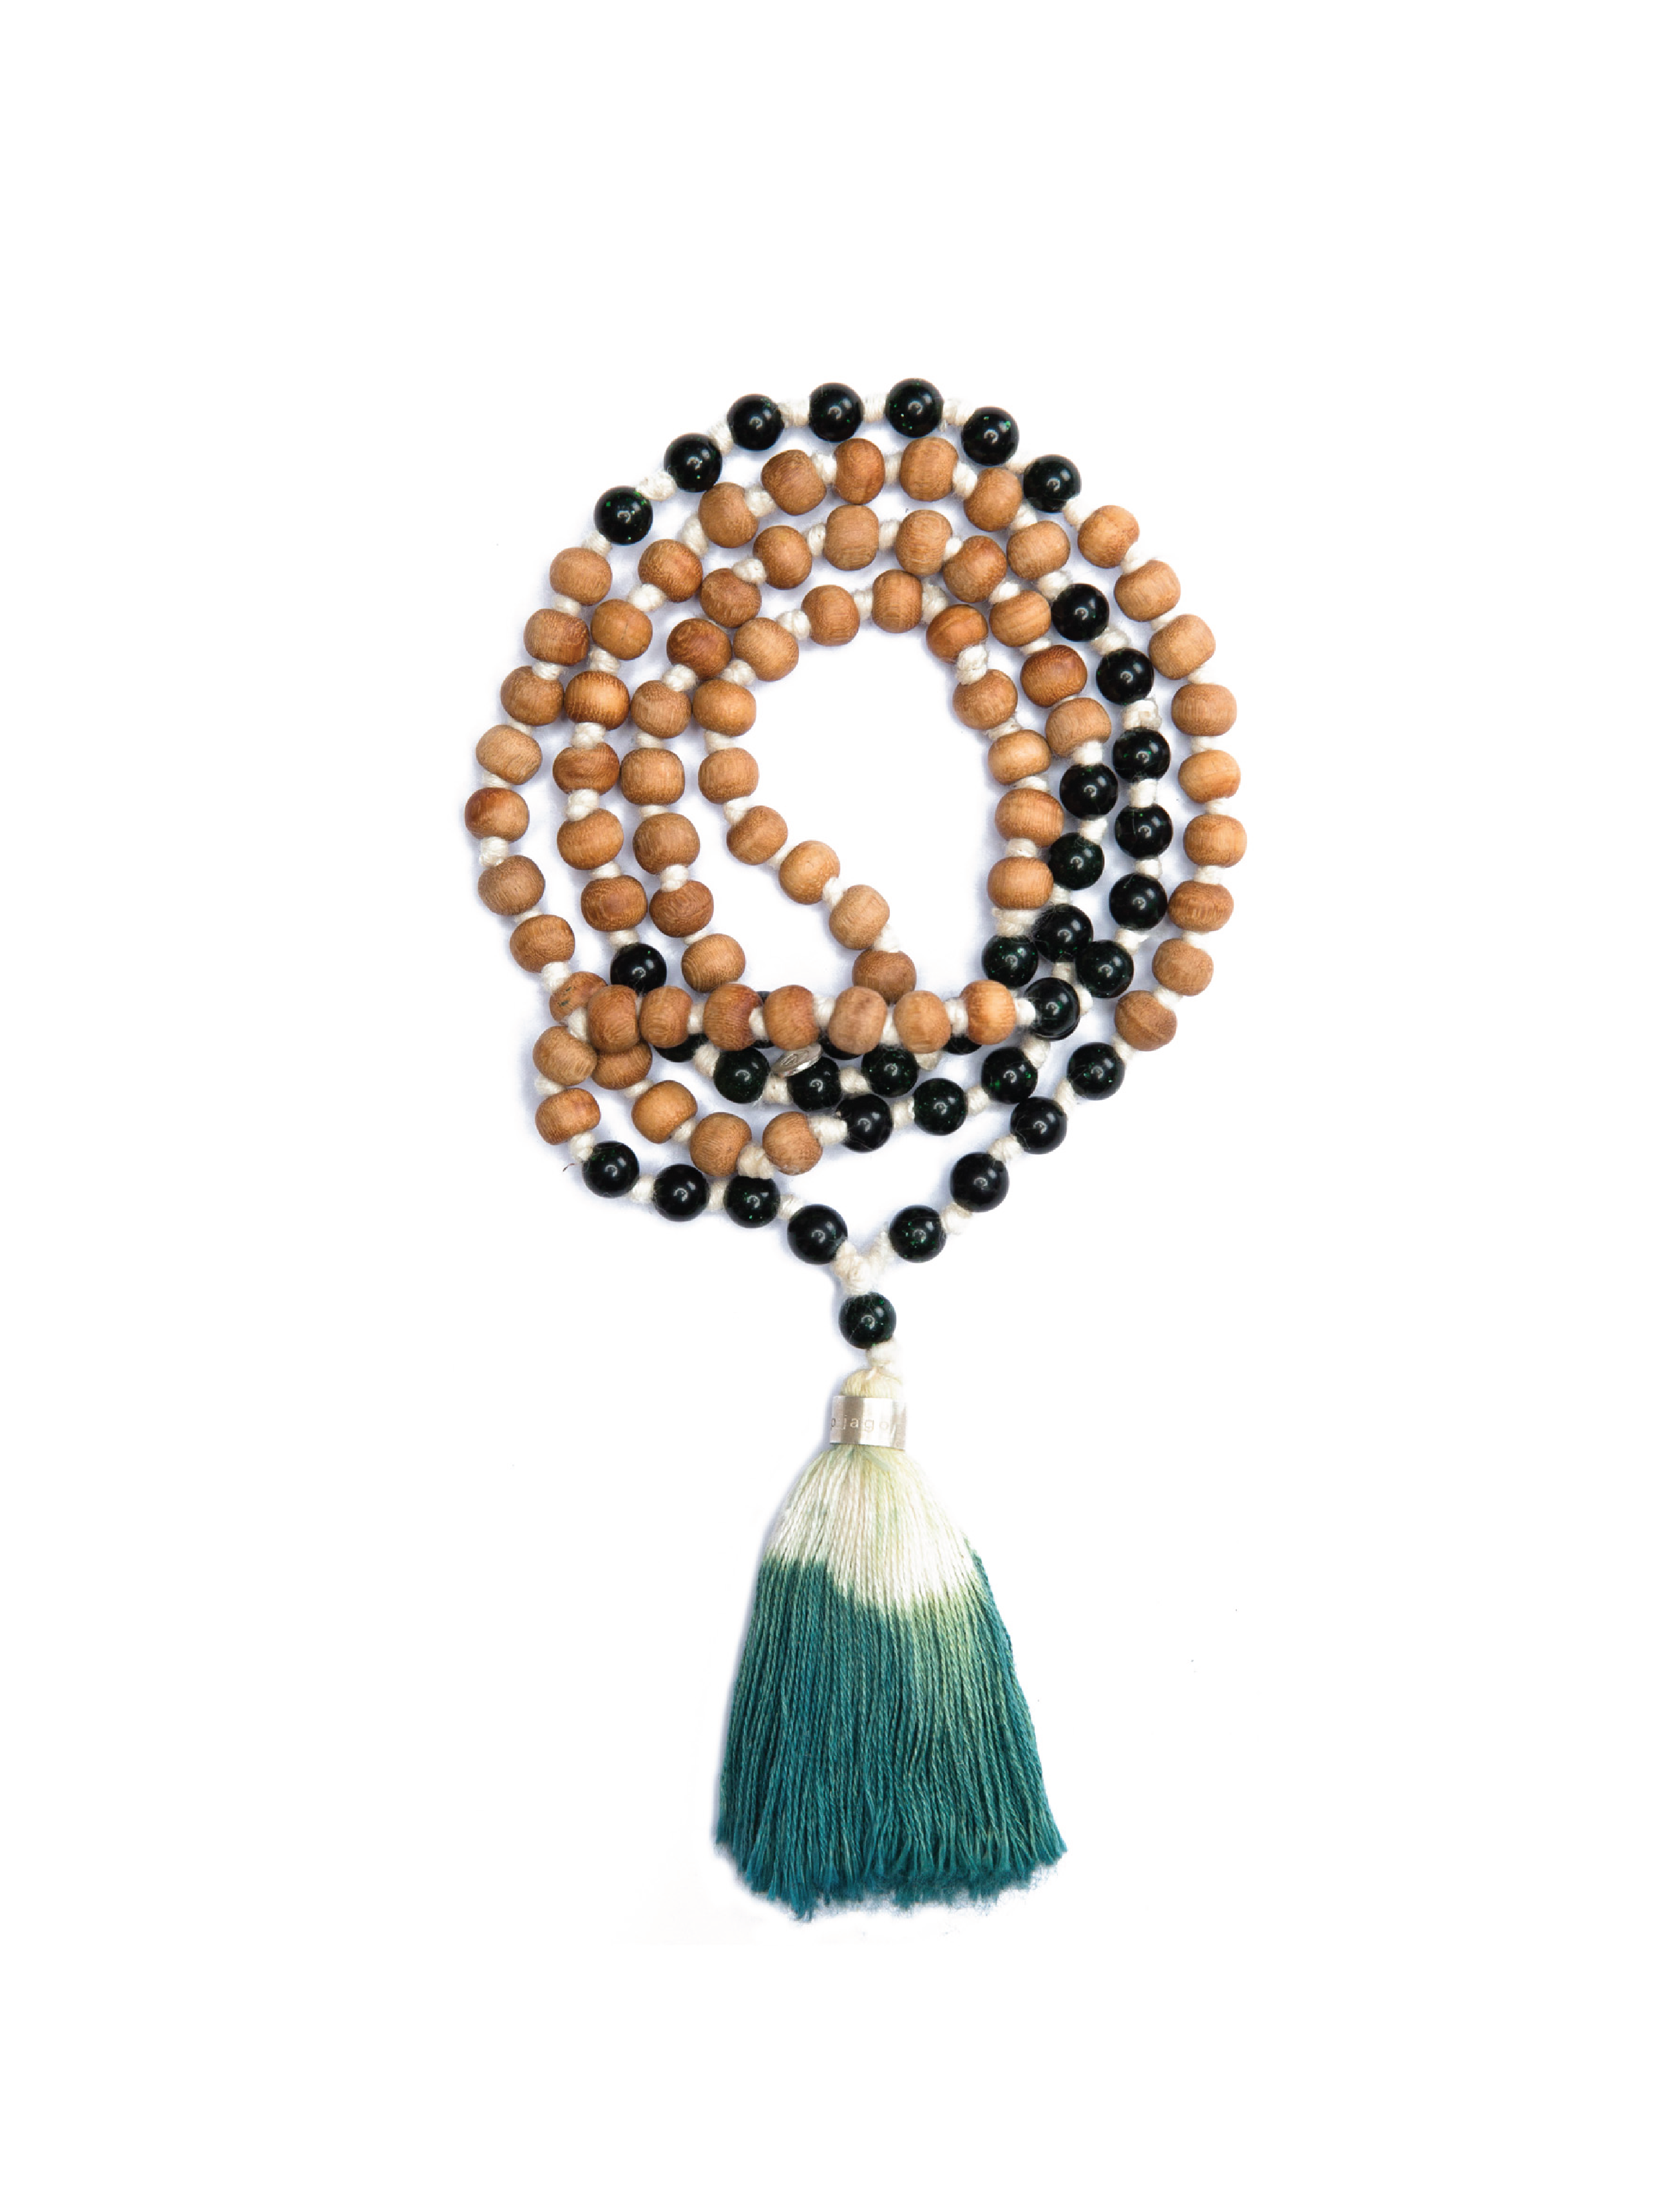 The Courageous Mala